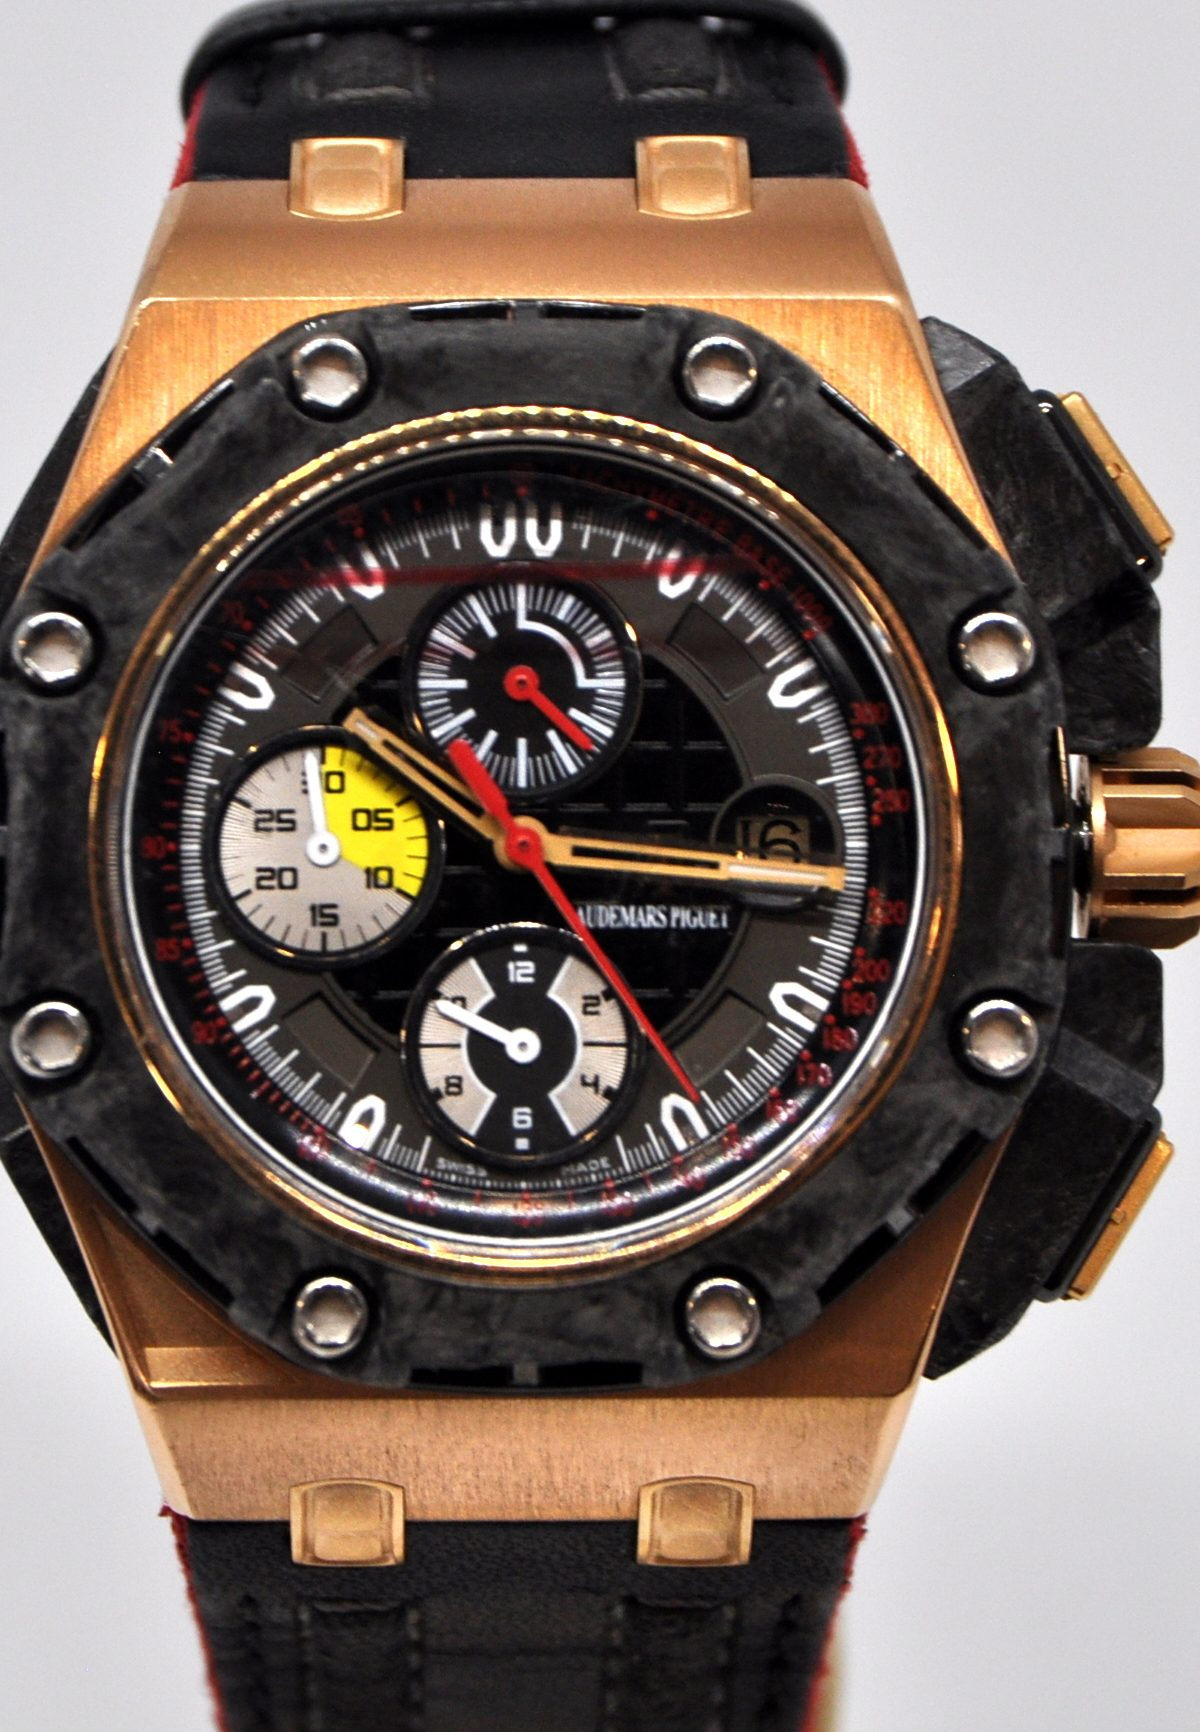 Audemars Piguet Royal Oak Offshore Grand Prix Timeoutlet Marbella